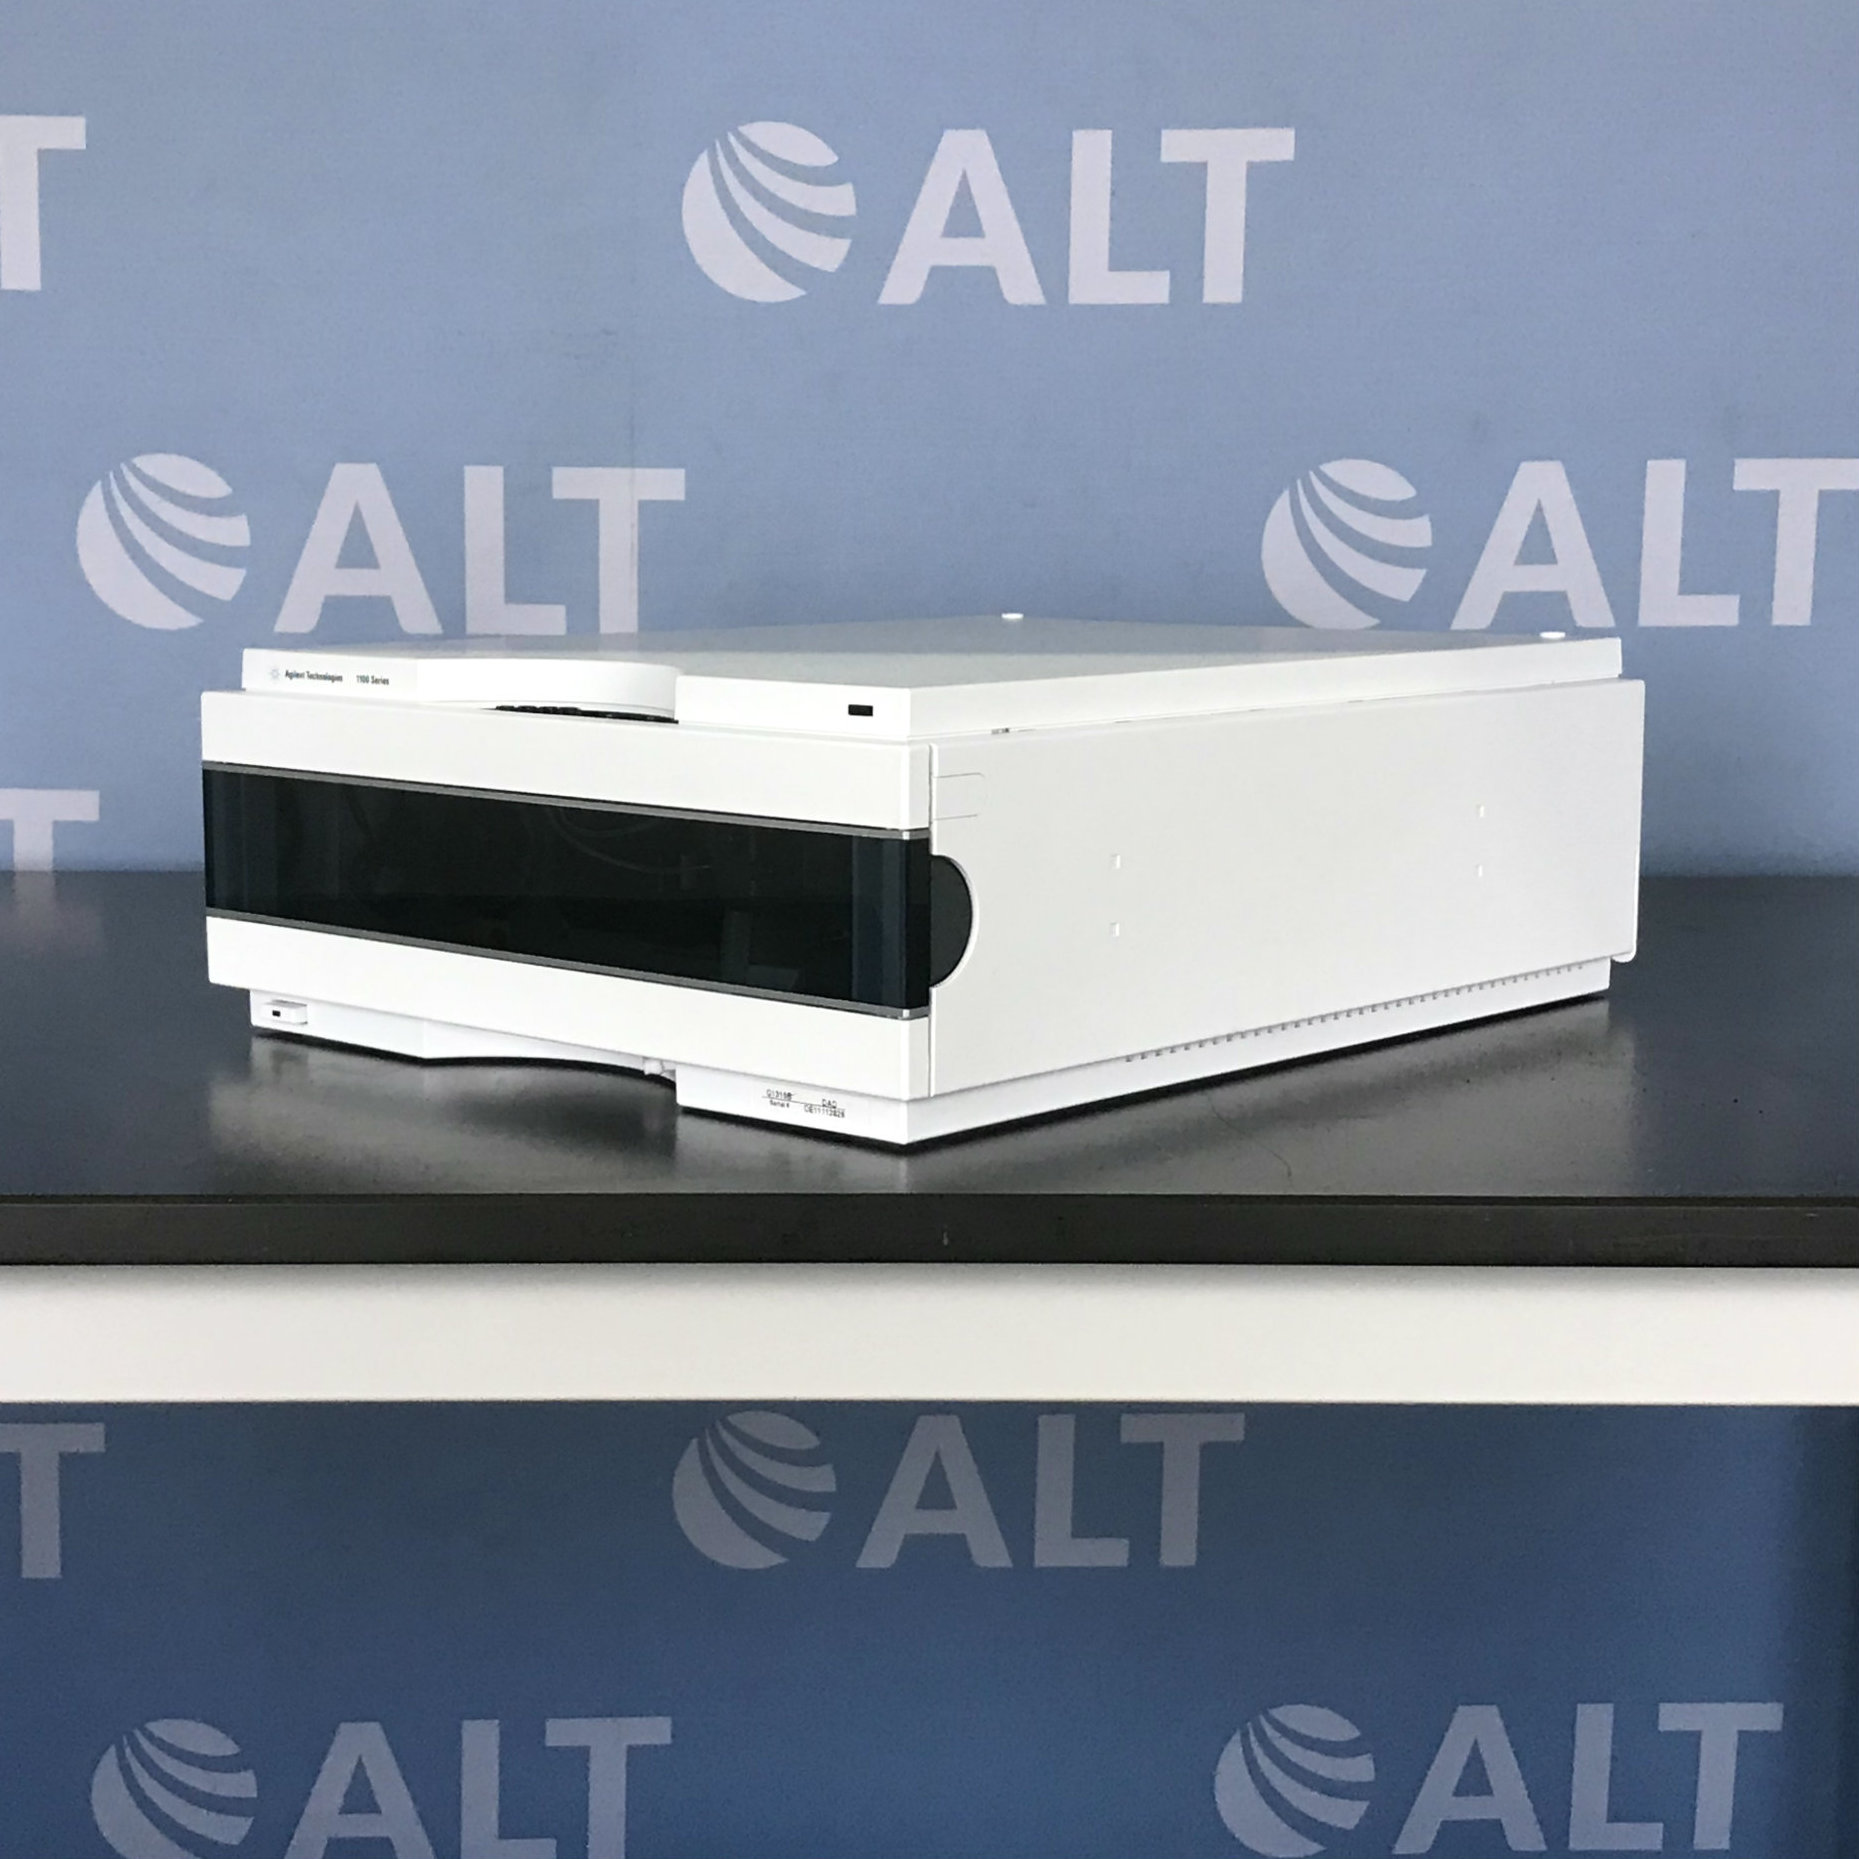 Agilent Factory Refurbished 1100 Series G1321A Fluorescence Detector Image